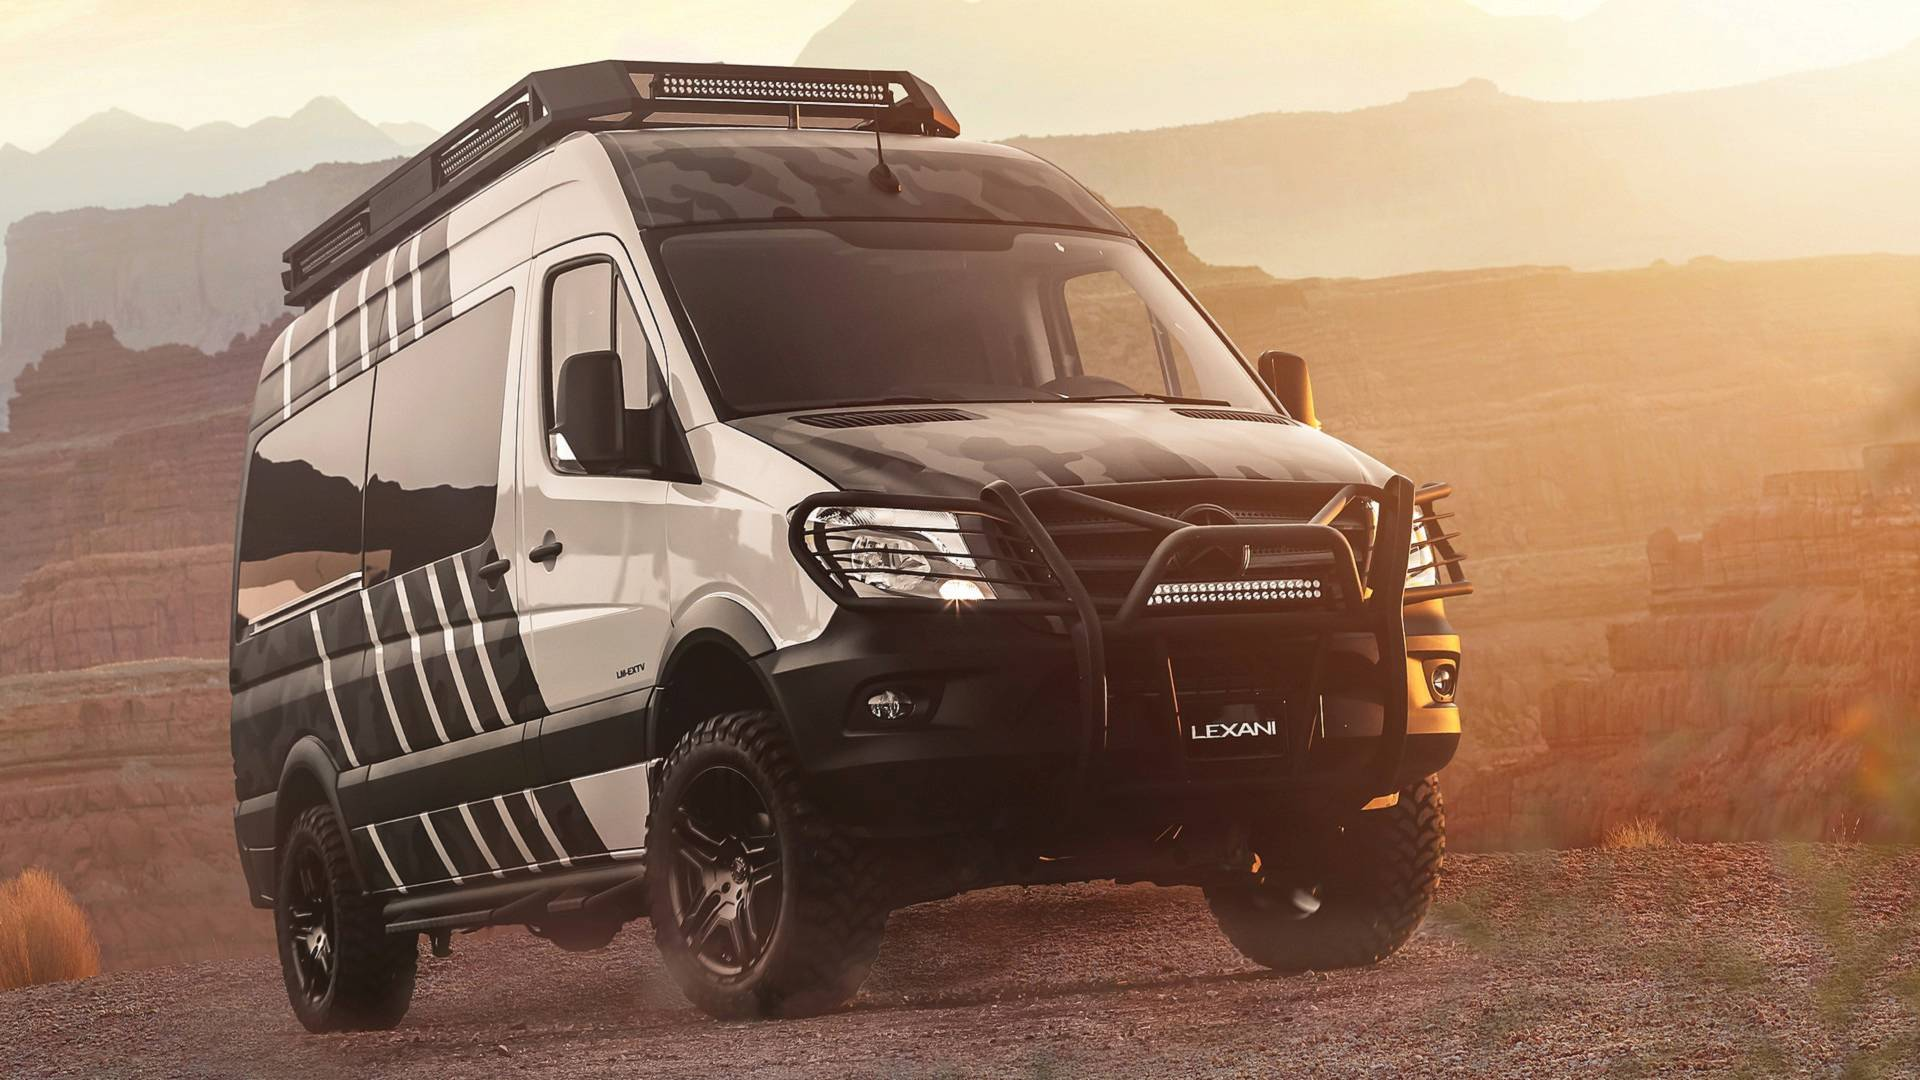 Lexani Lm Extv Camper Goes Off Road With Extreme Opulence Sprinter Rv Solar Systems